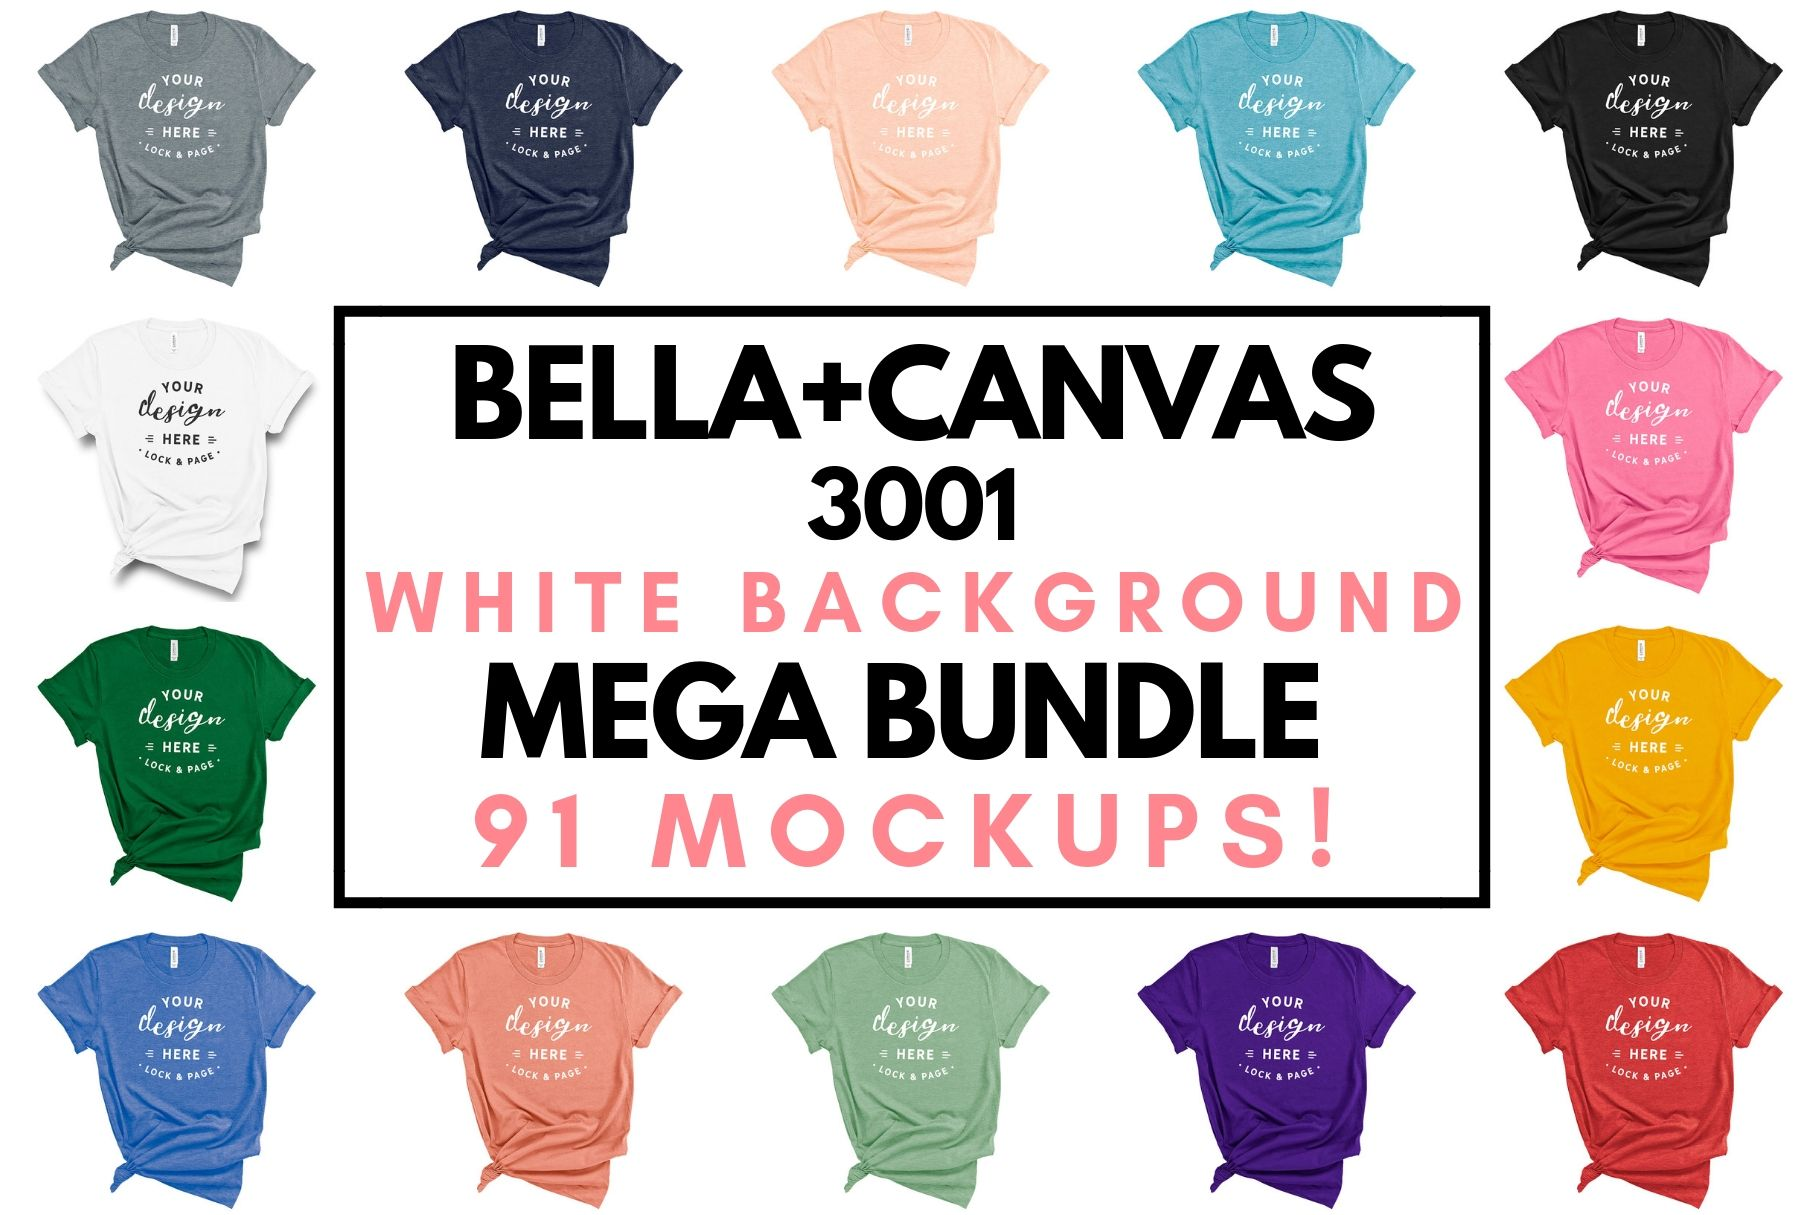 Download Bella Canvas 3001 T Shirt Mockup Bundle All Colors On White Example Image 1 Design Mockup Free Tshirt Mockup Shirt Mockup